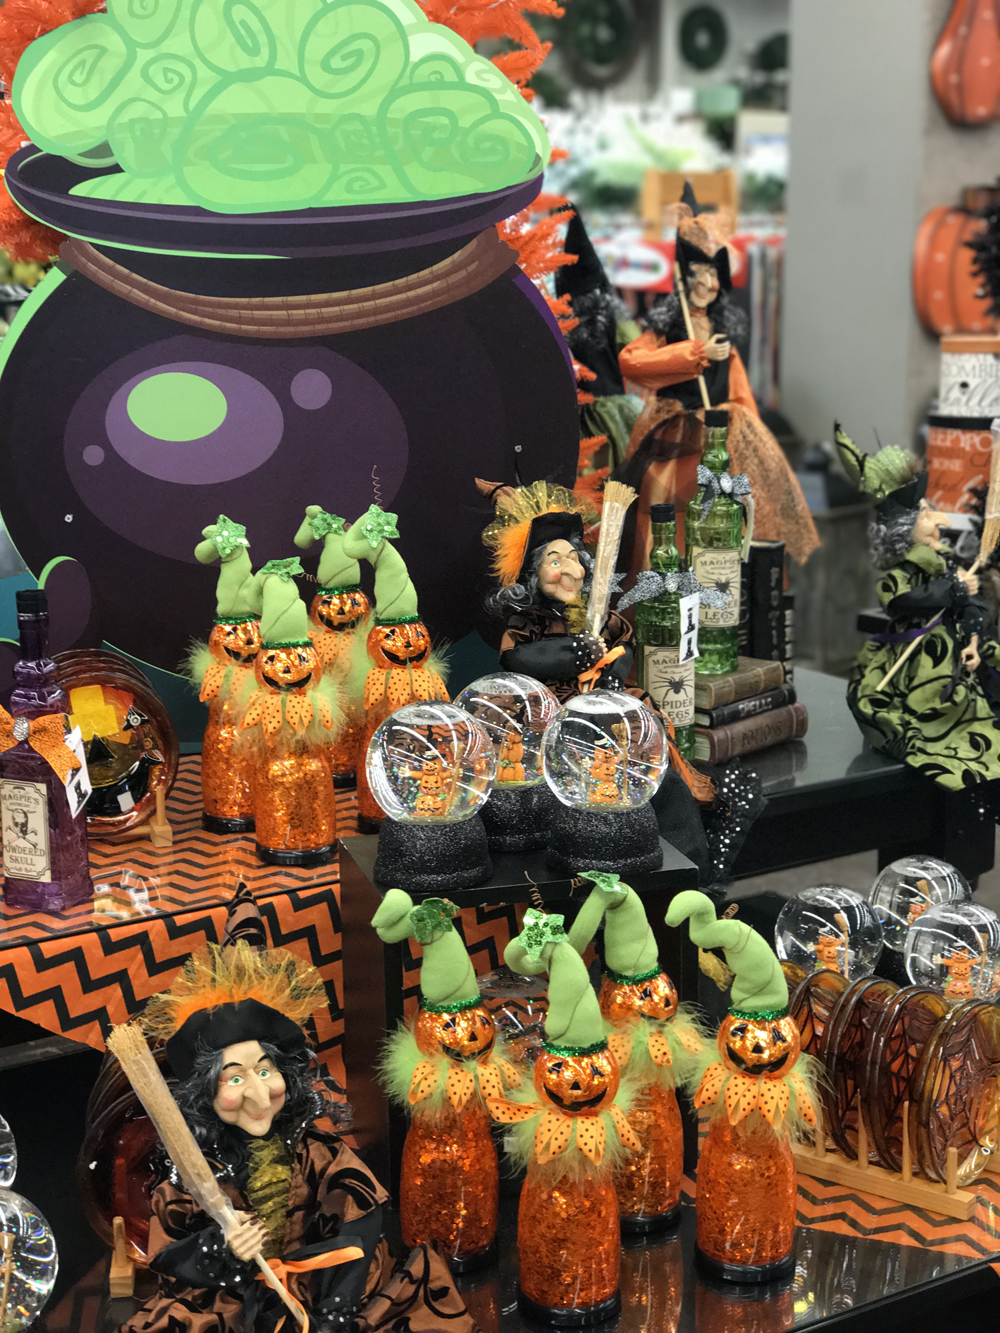 Haloween Decor at Jeffrey Alans, 4 stores in Illinois and Indiana